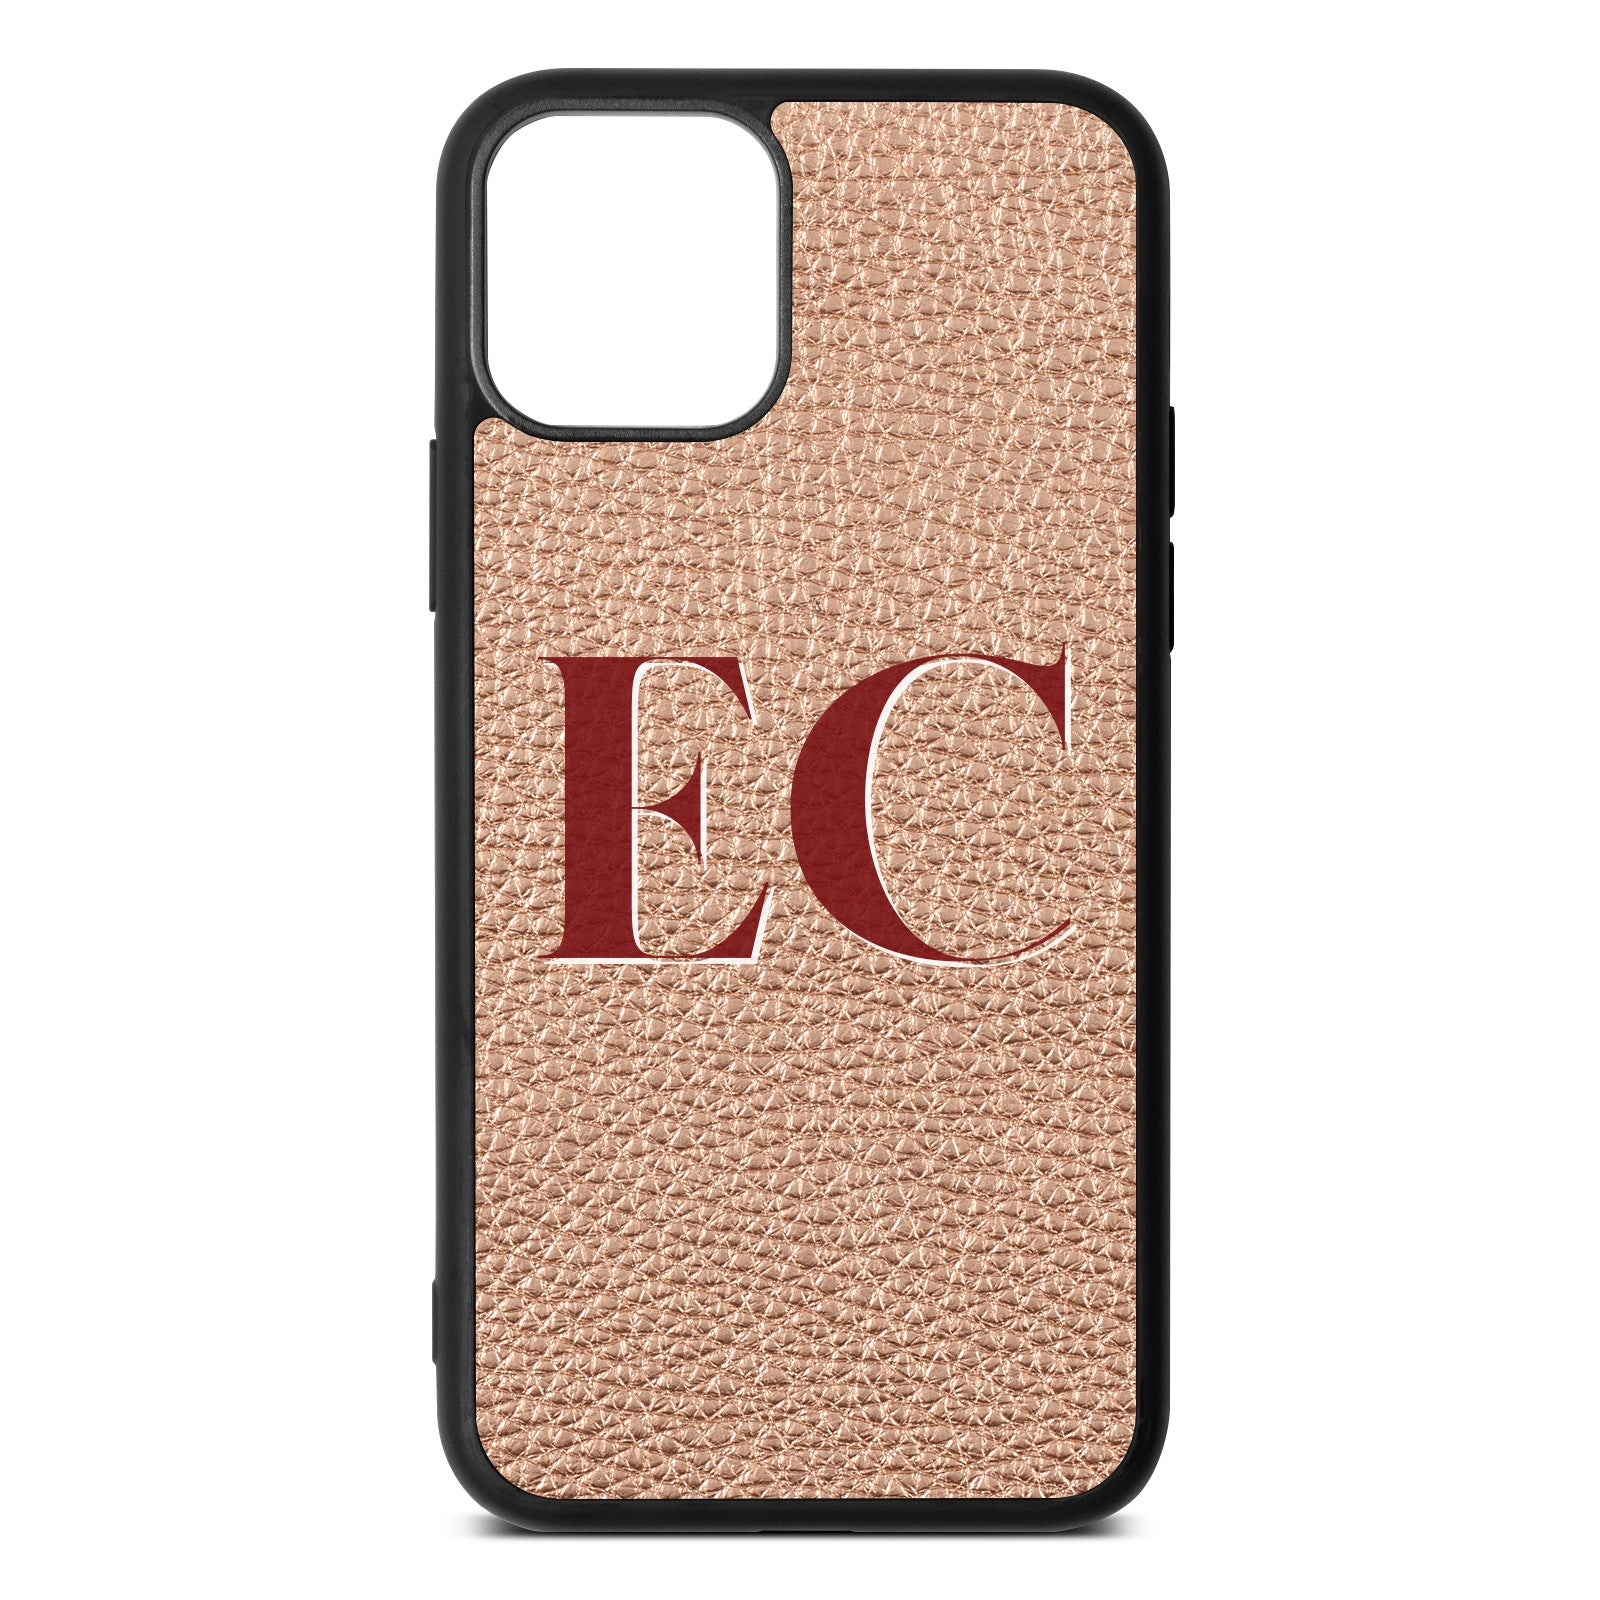 iPhone 11 Rose Gold Pebble Leather Case